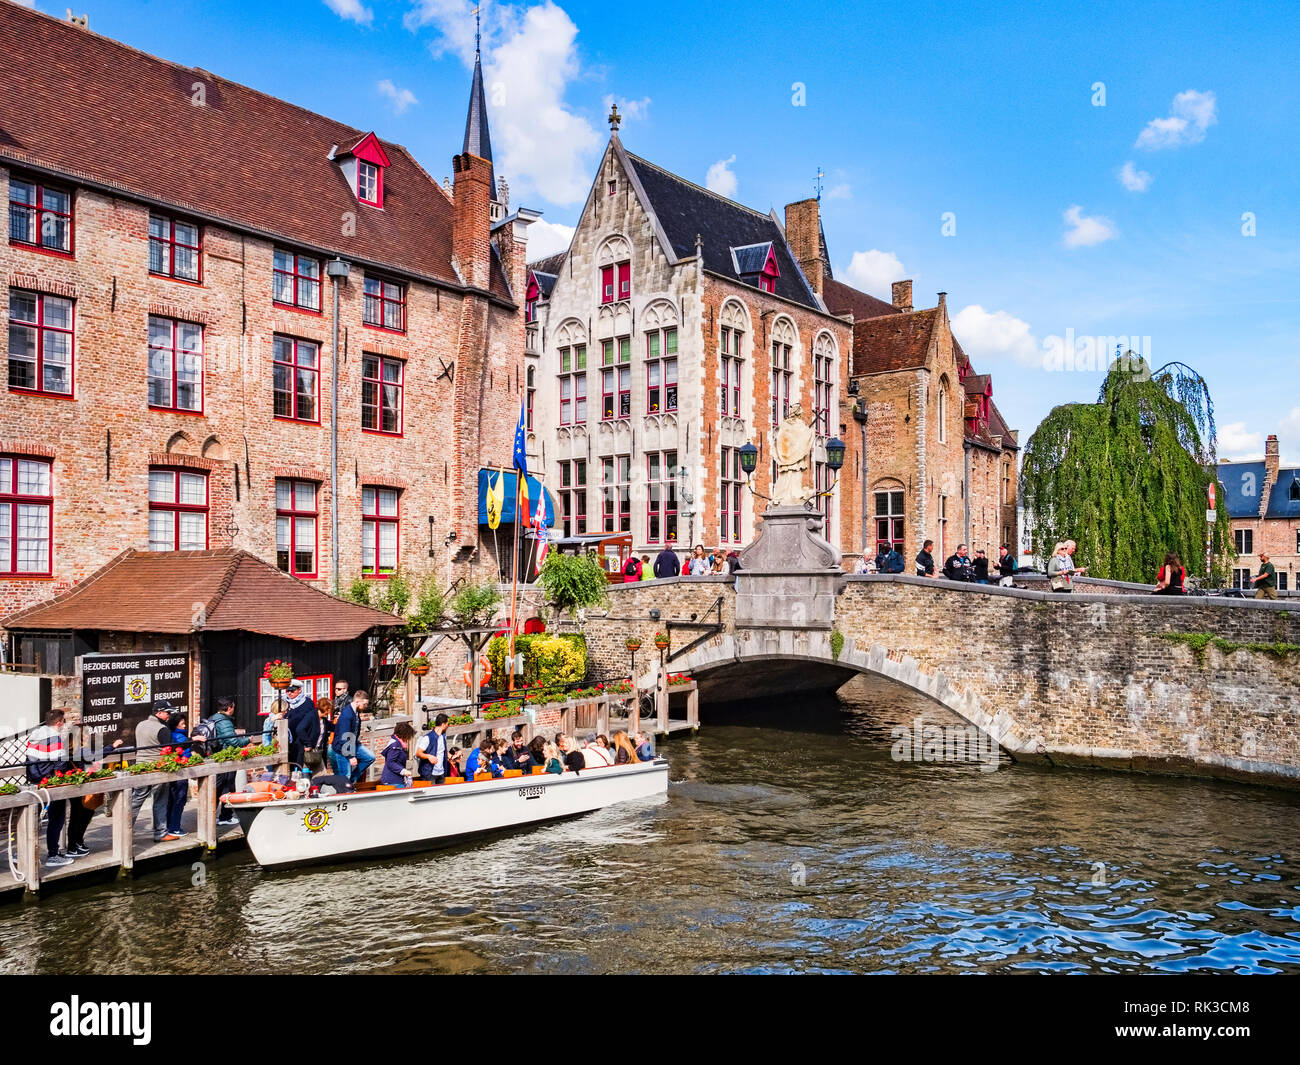 25 September 2018: Bruges, Belgium - Tourists boarding a tour boat on the canal by the Wollestraat Bridge in Bruges. Stock Photo